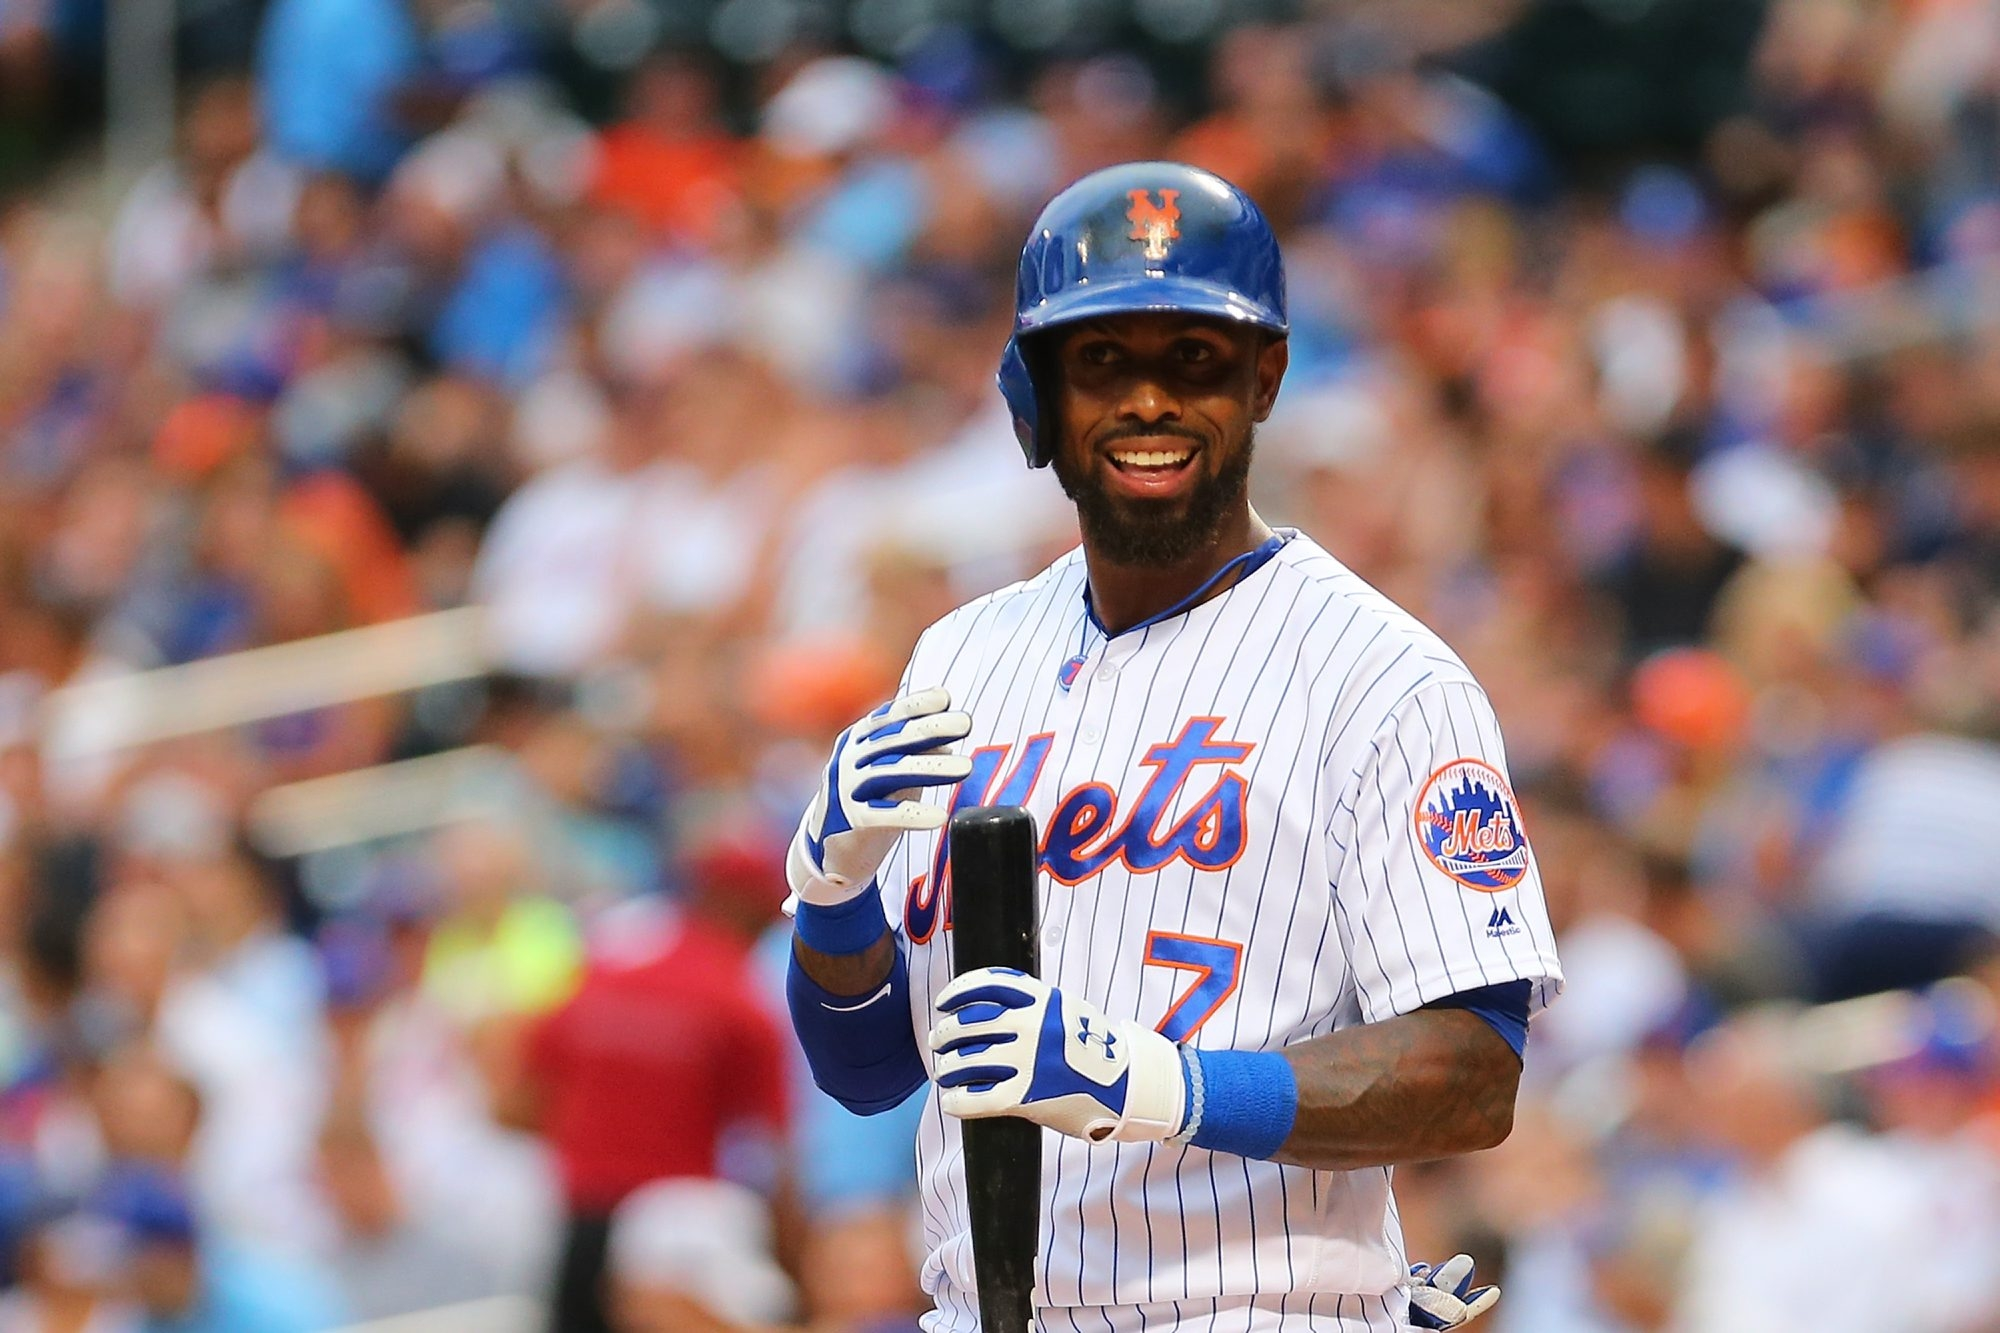 NEW YORK, NEW YORK - JULY 07:  Jose Reyes #7 of the New York Mets looks on priro to his at bat against the Washington Nationals in the first inning at Citi Field on July 7, 2016 in the Flushing neighborhood of the Queens borough of New York City.  (Photo by Mike Stobe/Getty Images)